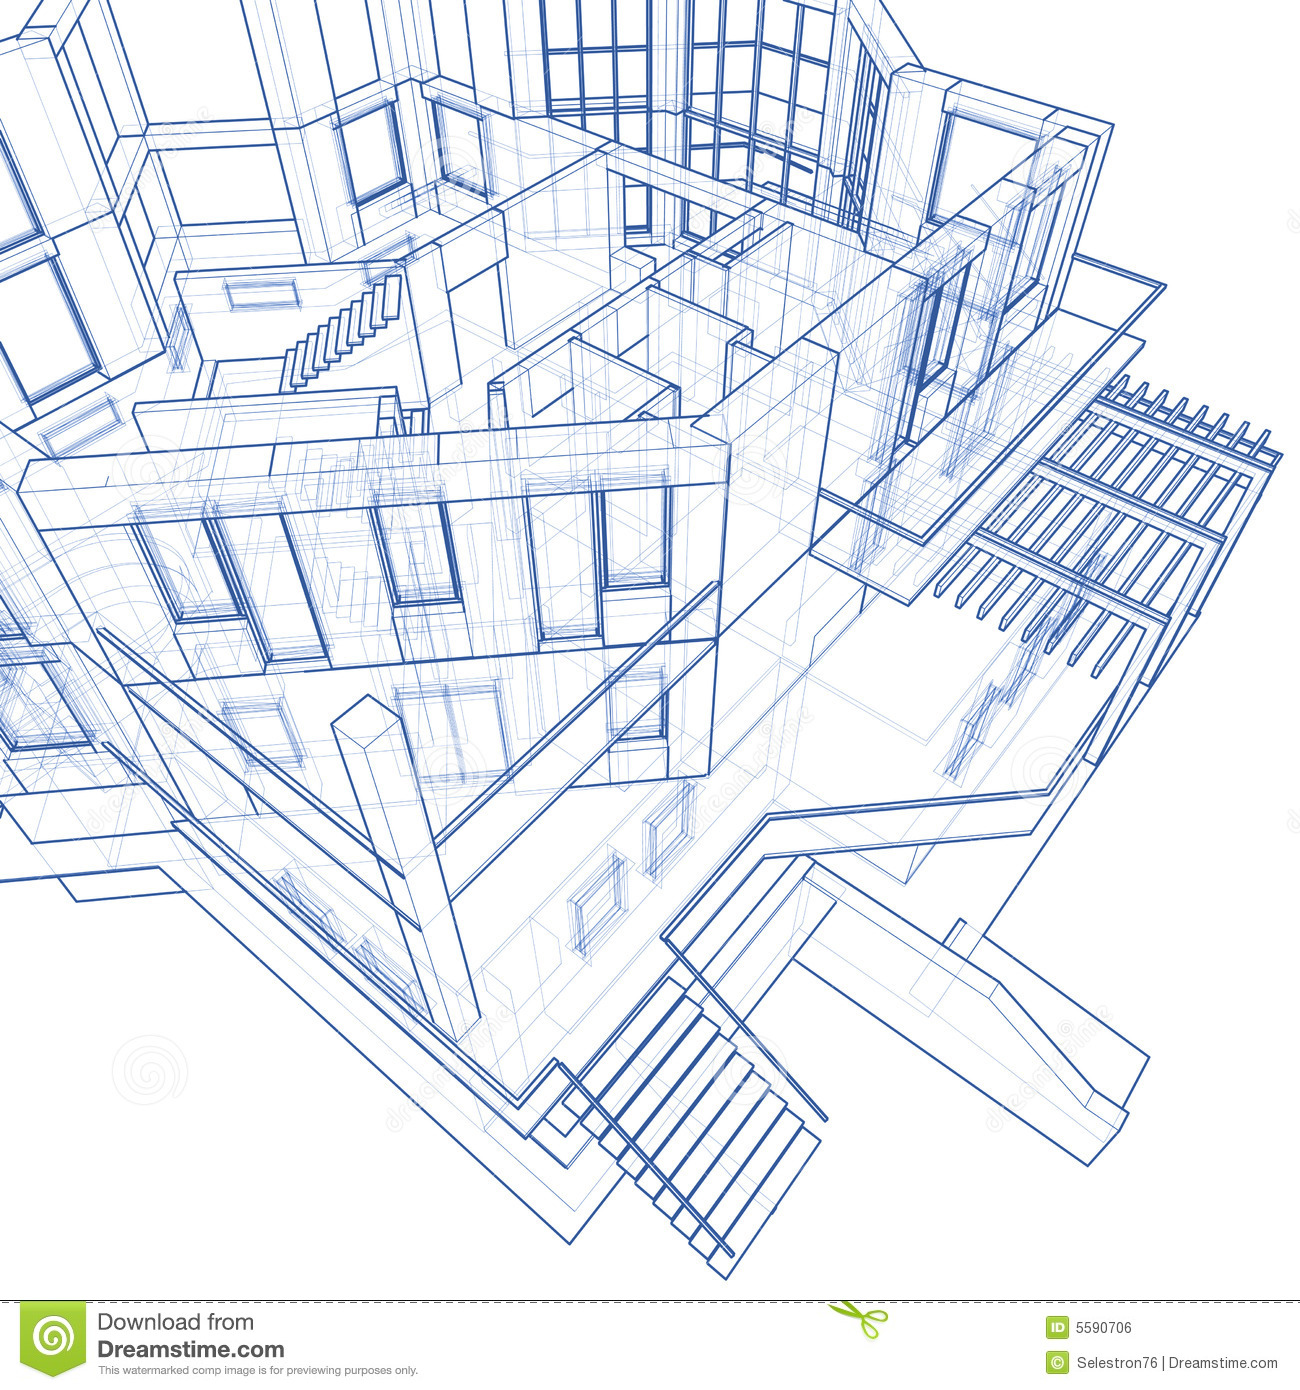 House architecture blueprint stock illustration illustration of house architecture blueprint apartment construction malvernweather Image collections